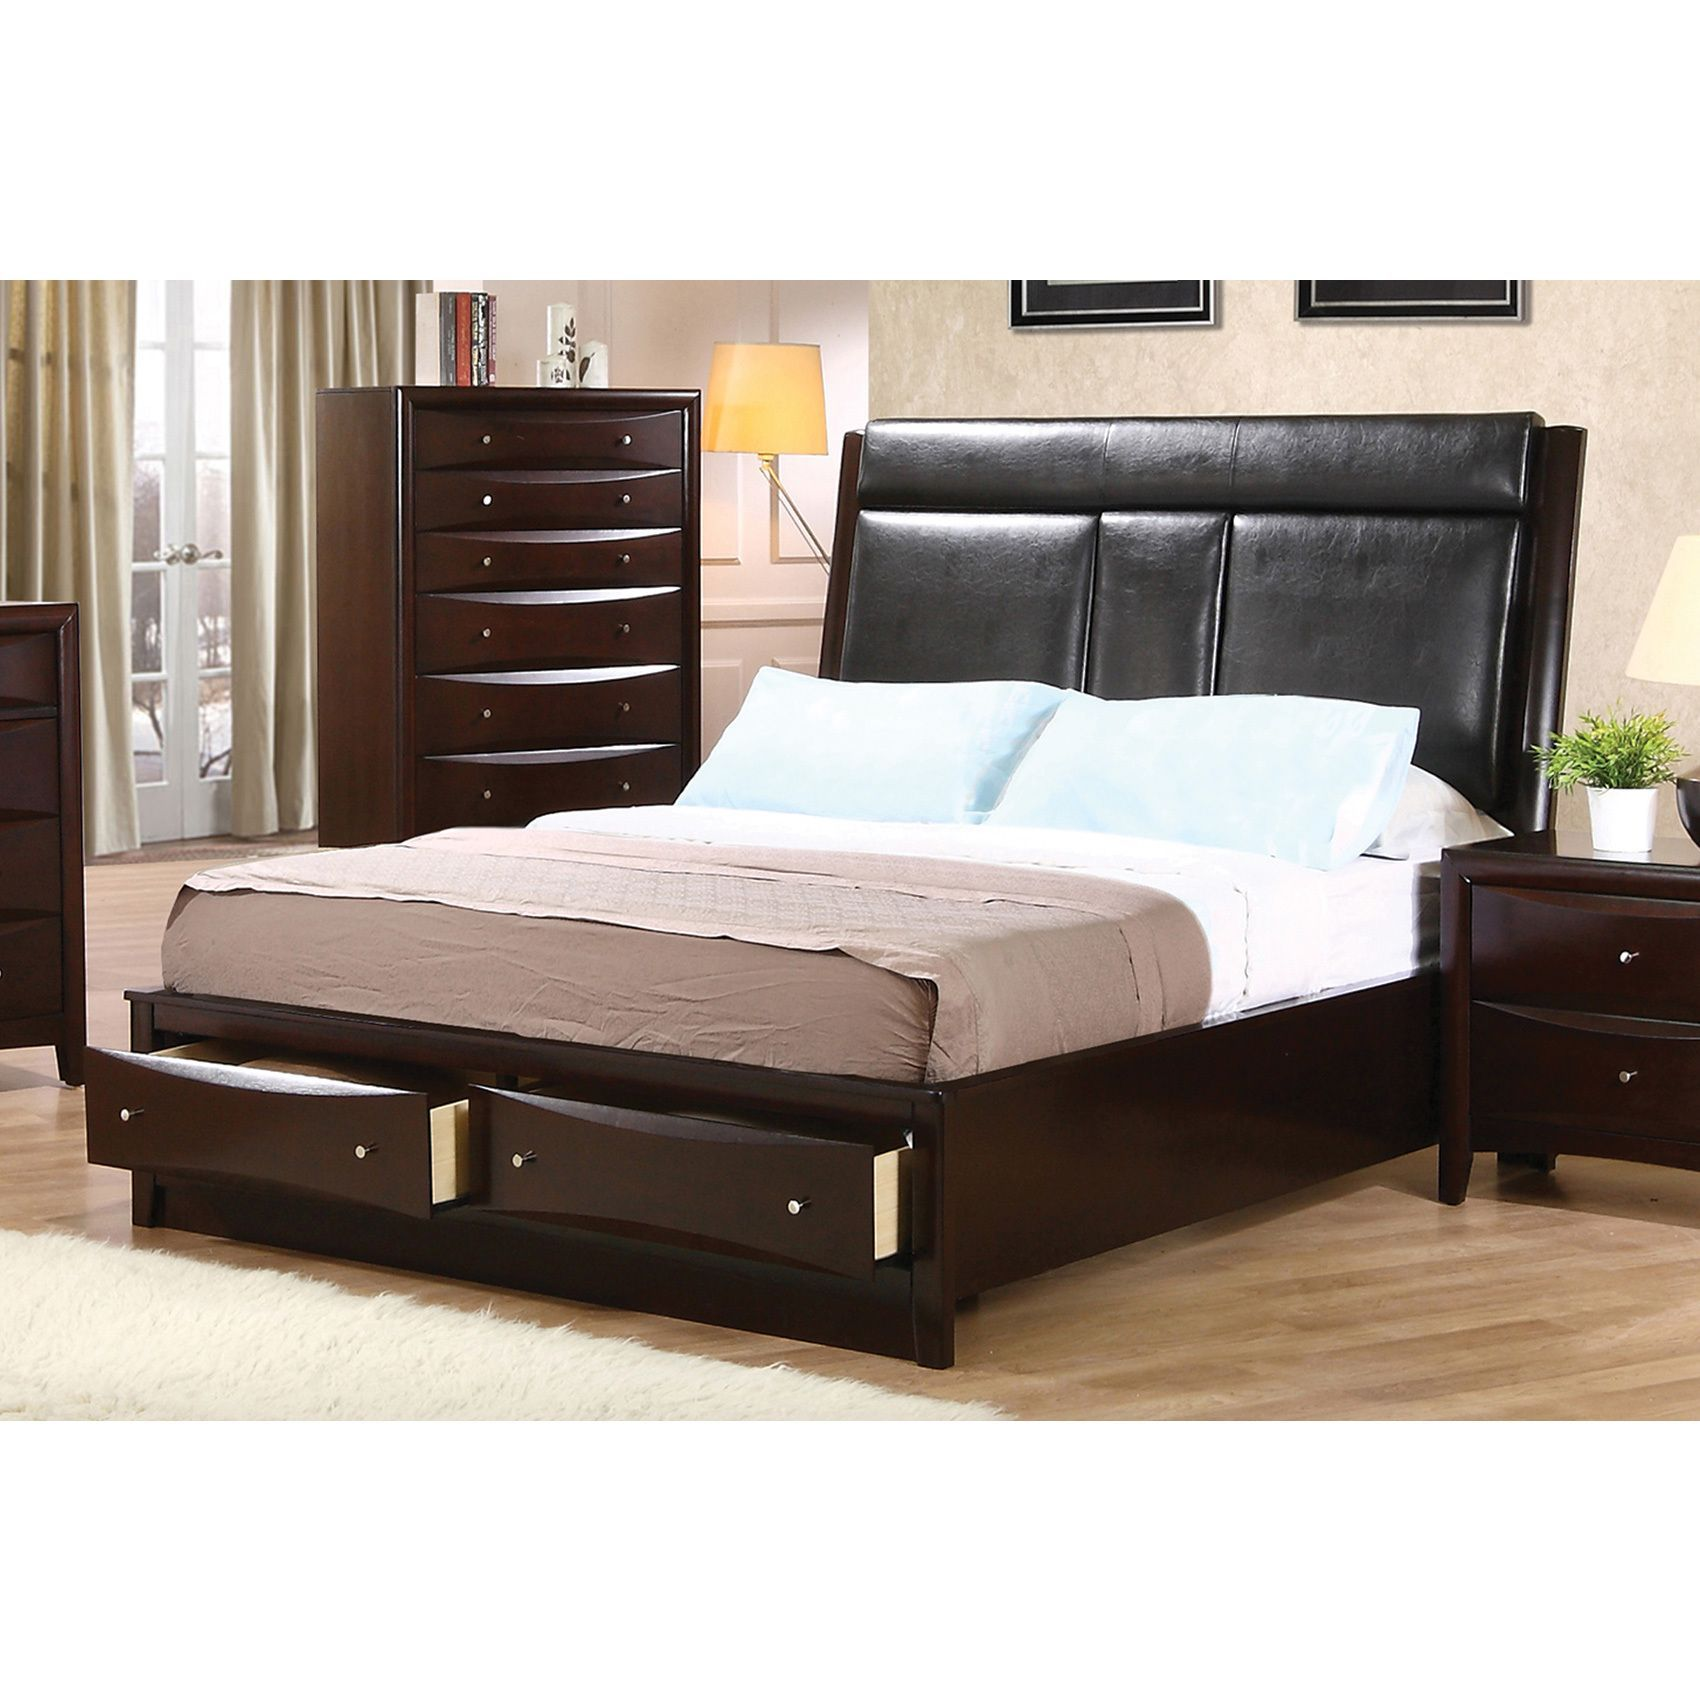 Coaster company phoenix cappuccino storage bed king brown